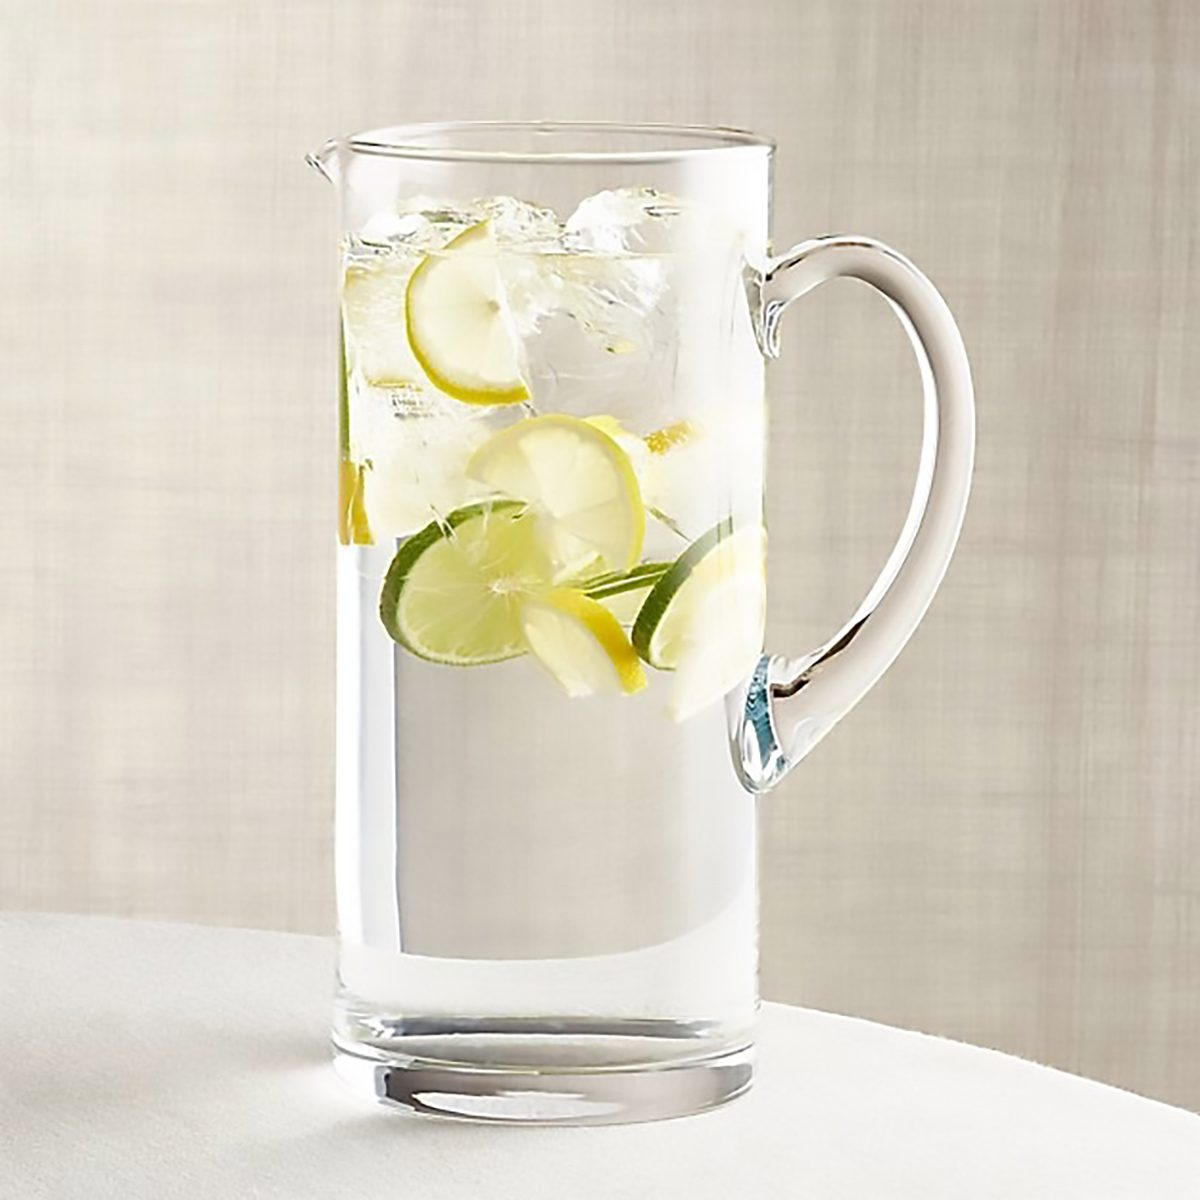 Peak 86 oz. Glass Pitcher